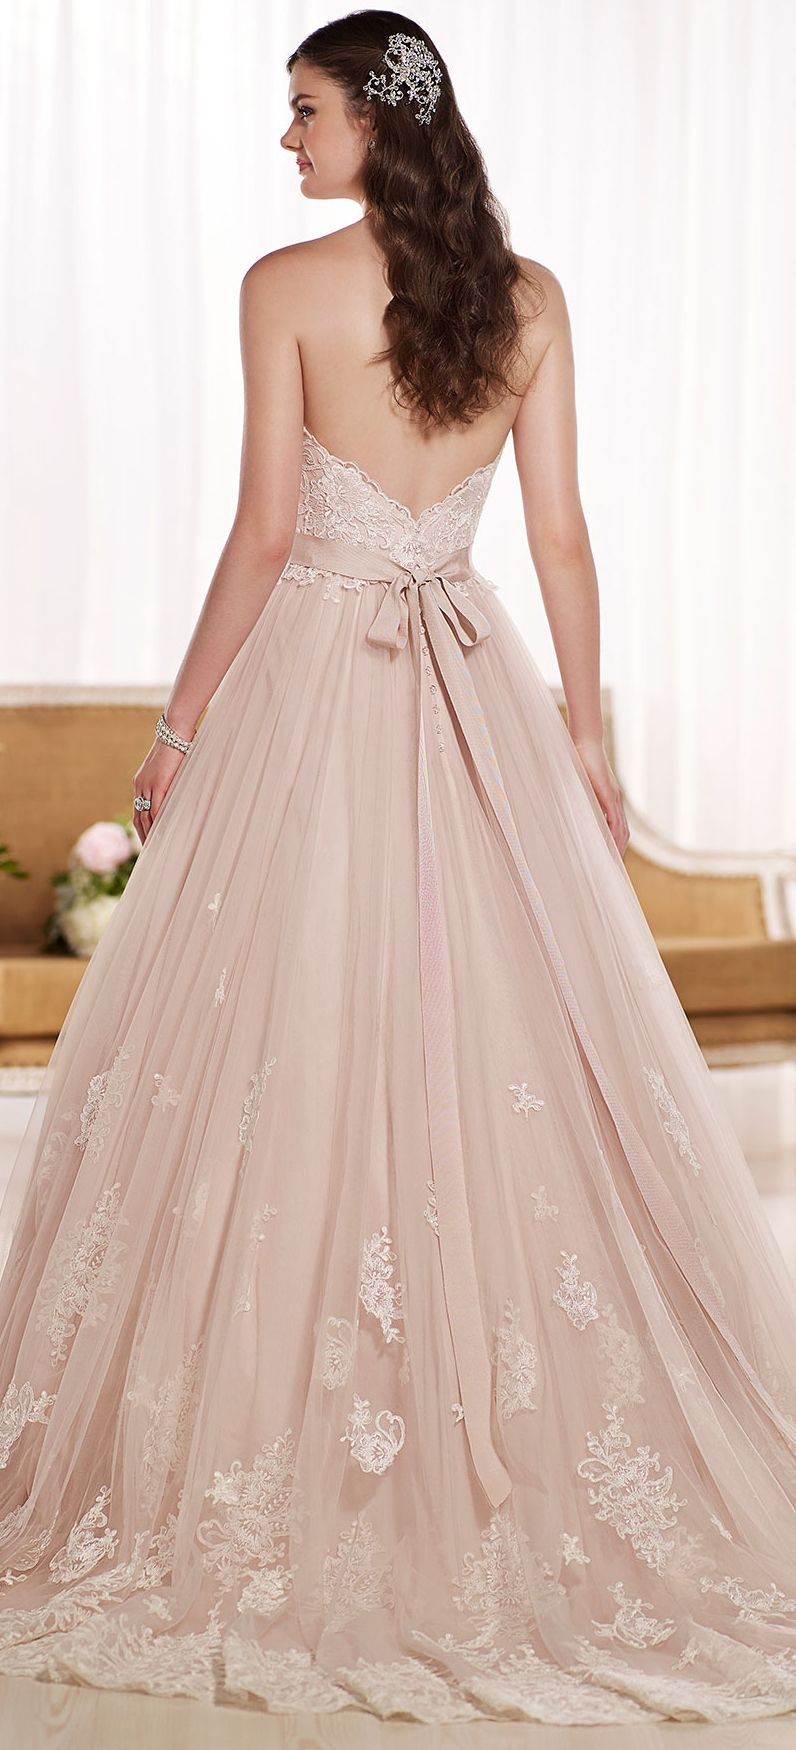 Blush princess wedding gown   Wedding   Pinterest   Gowns  Princess     Blush princess wedding gown